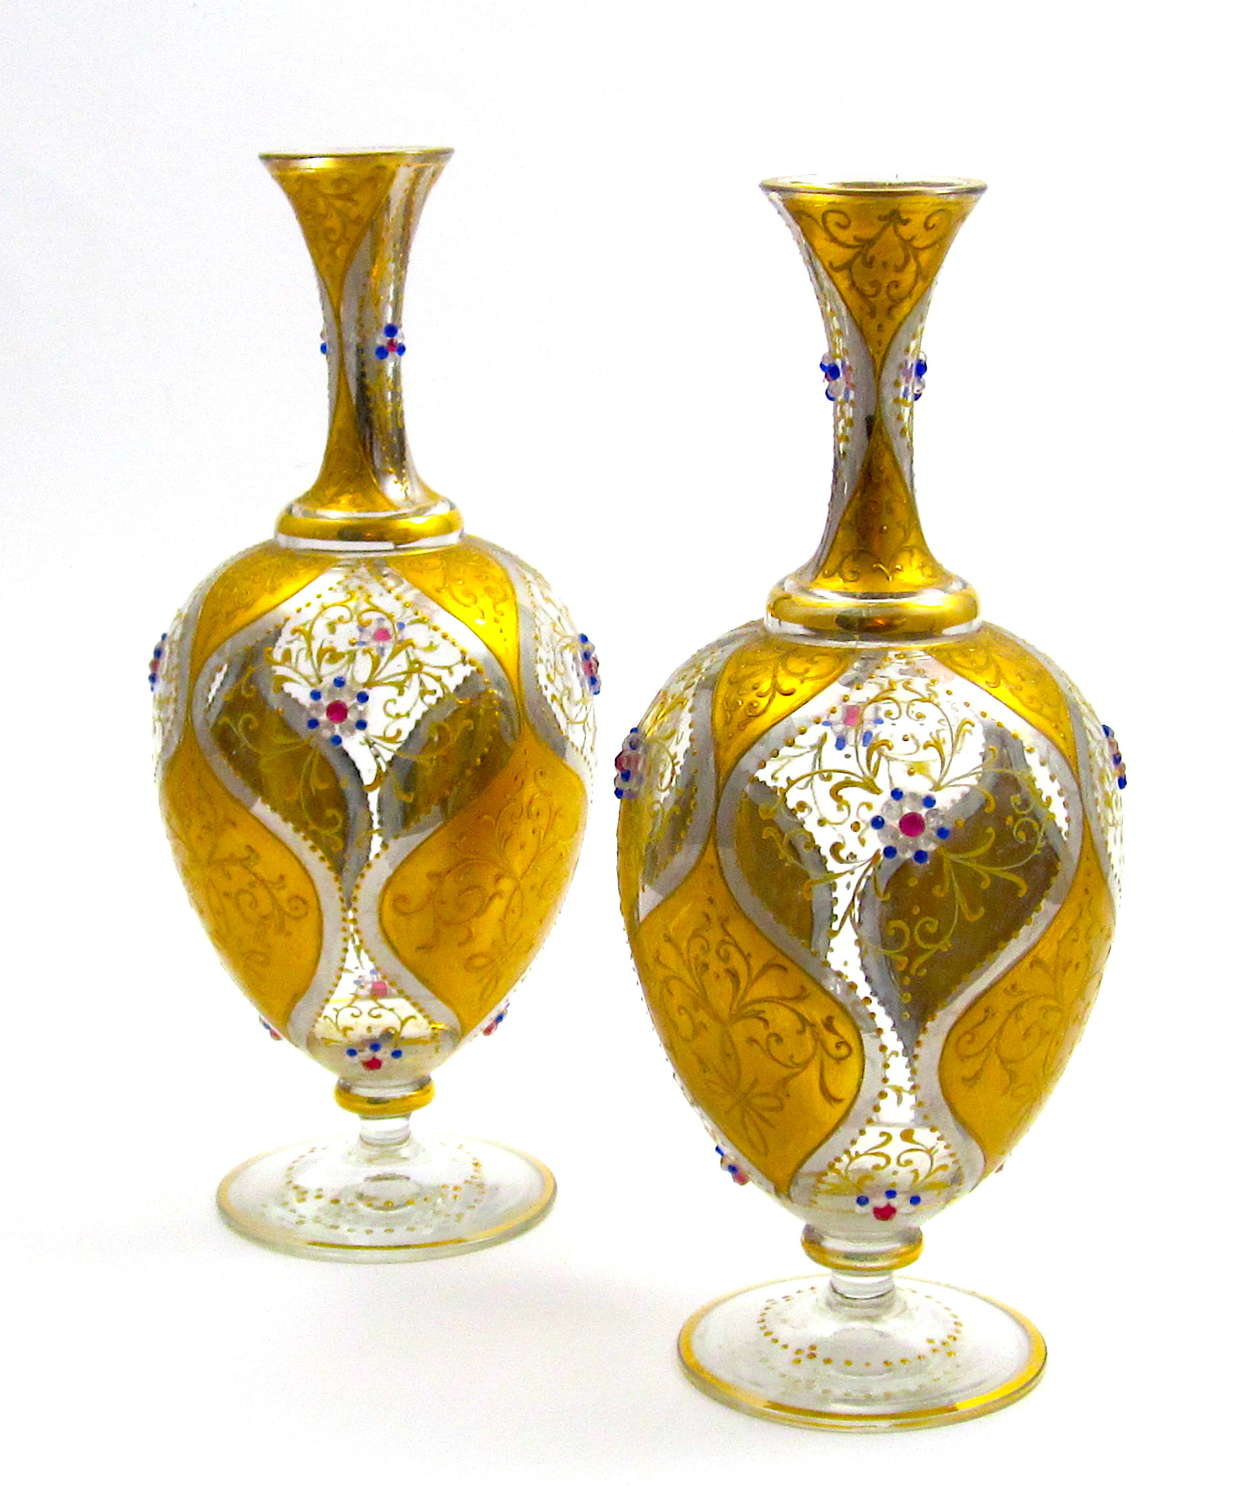 Pair of Antique Moser Glass Vases with Jewelled Flowers